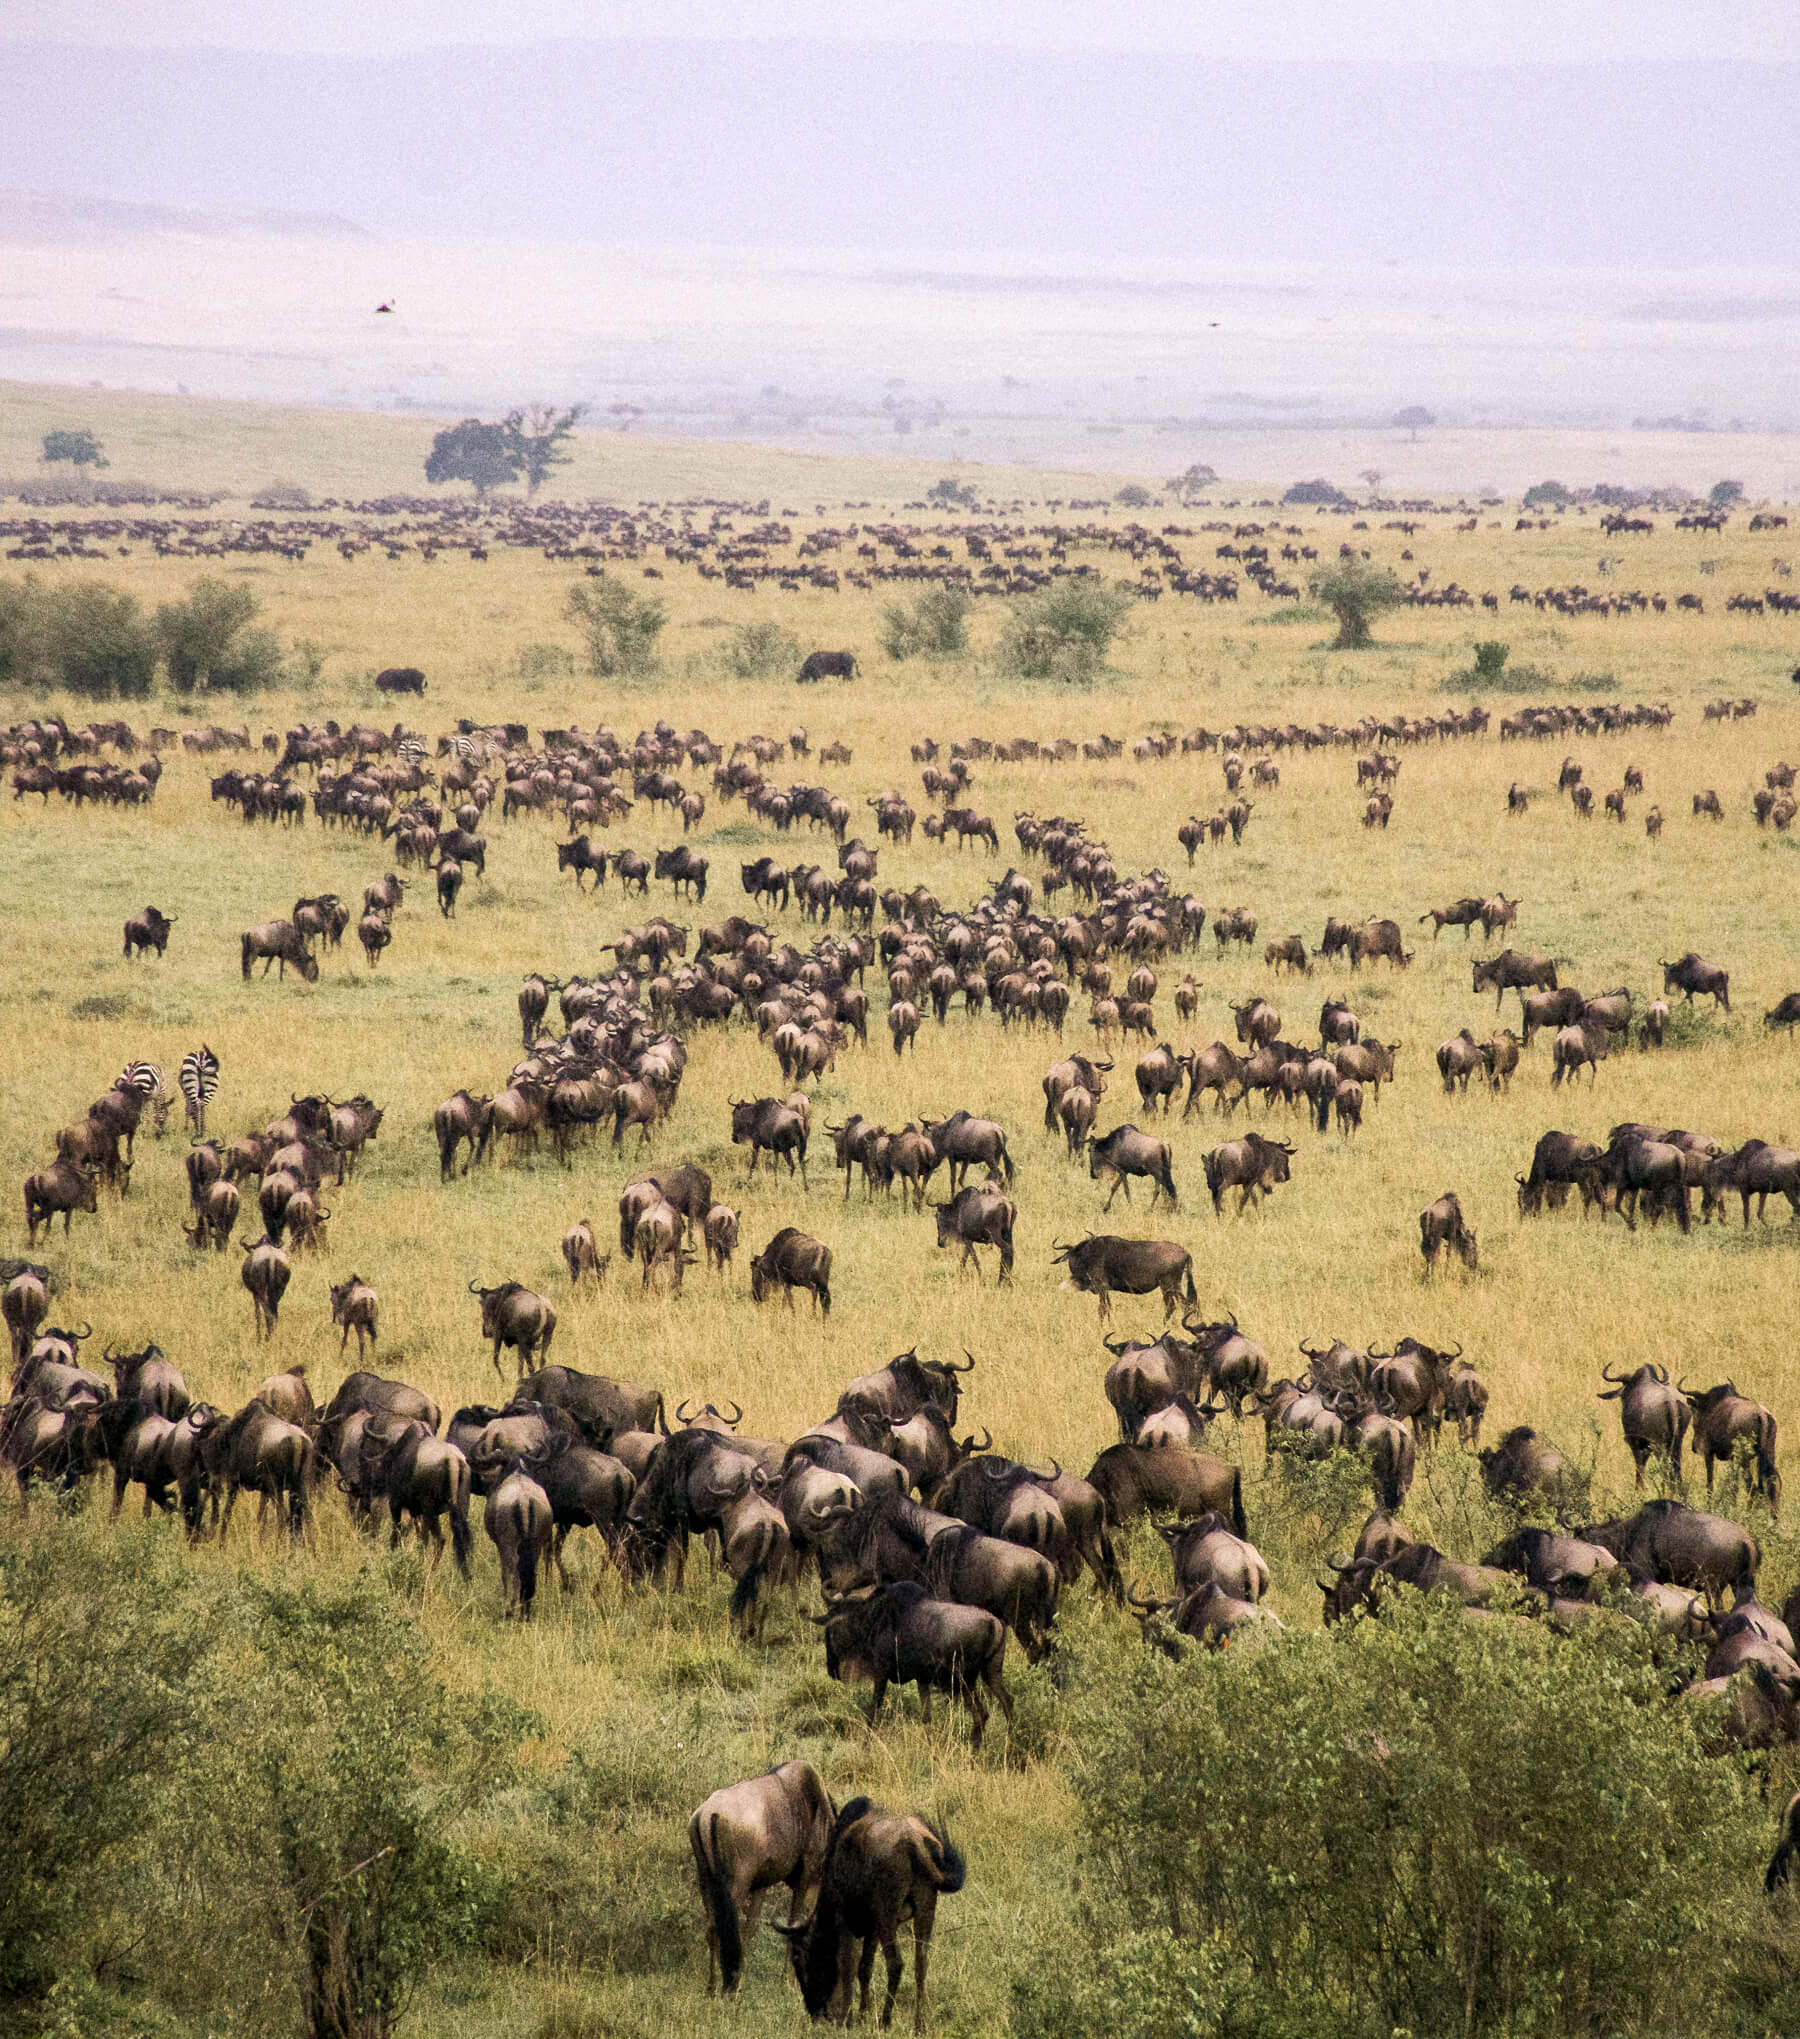 Thousands of wildebeest migrating in lines through the Maasai Mara - View from a hot air balloon